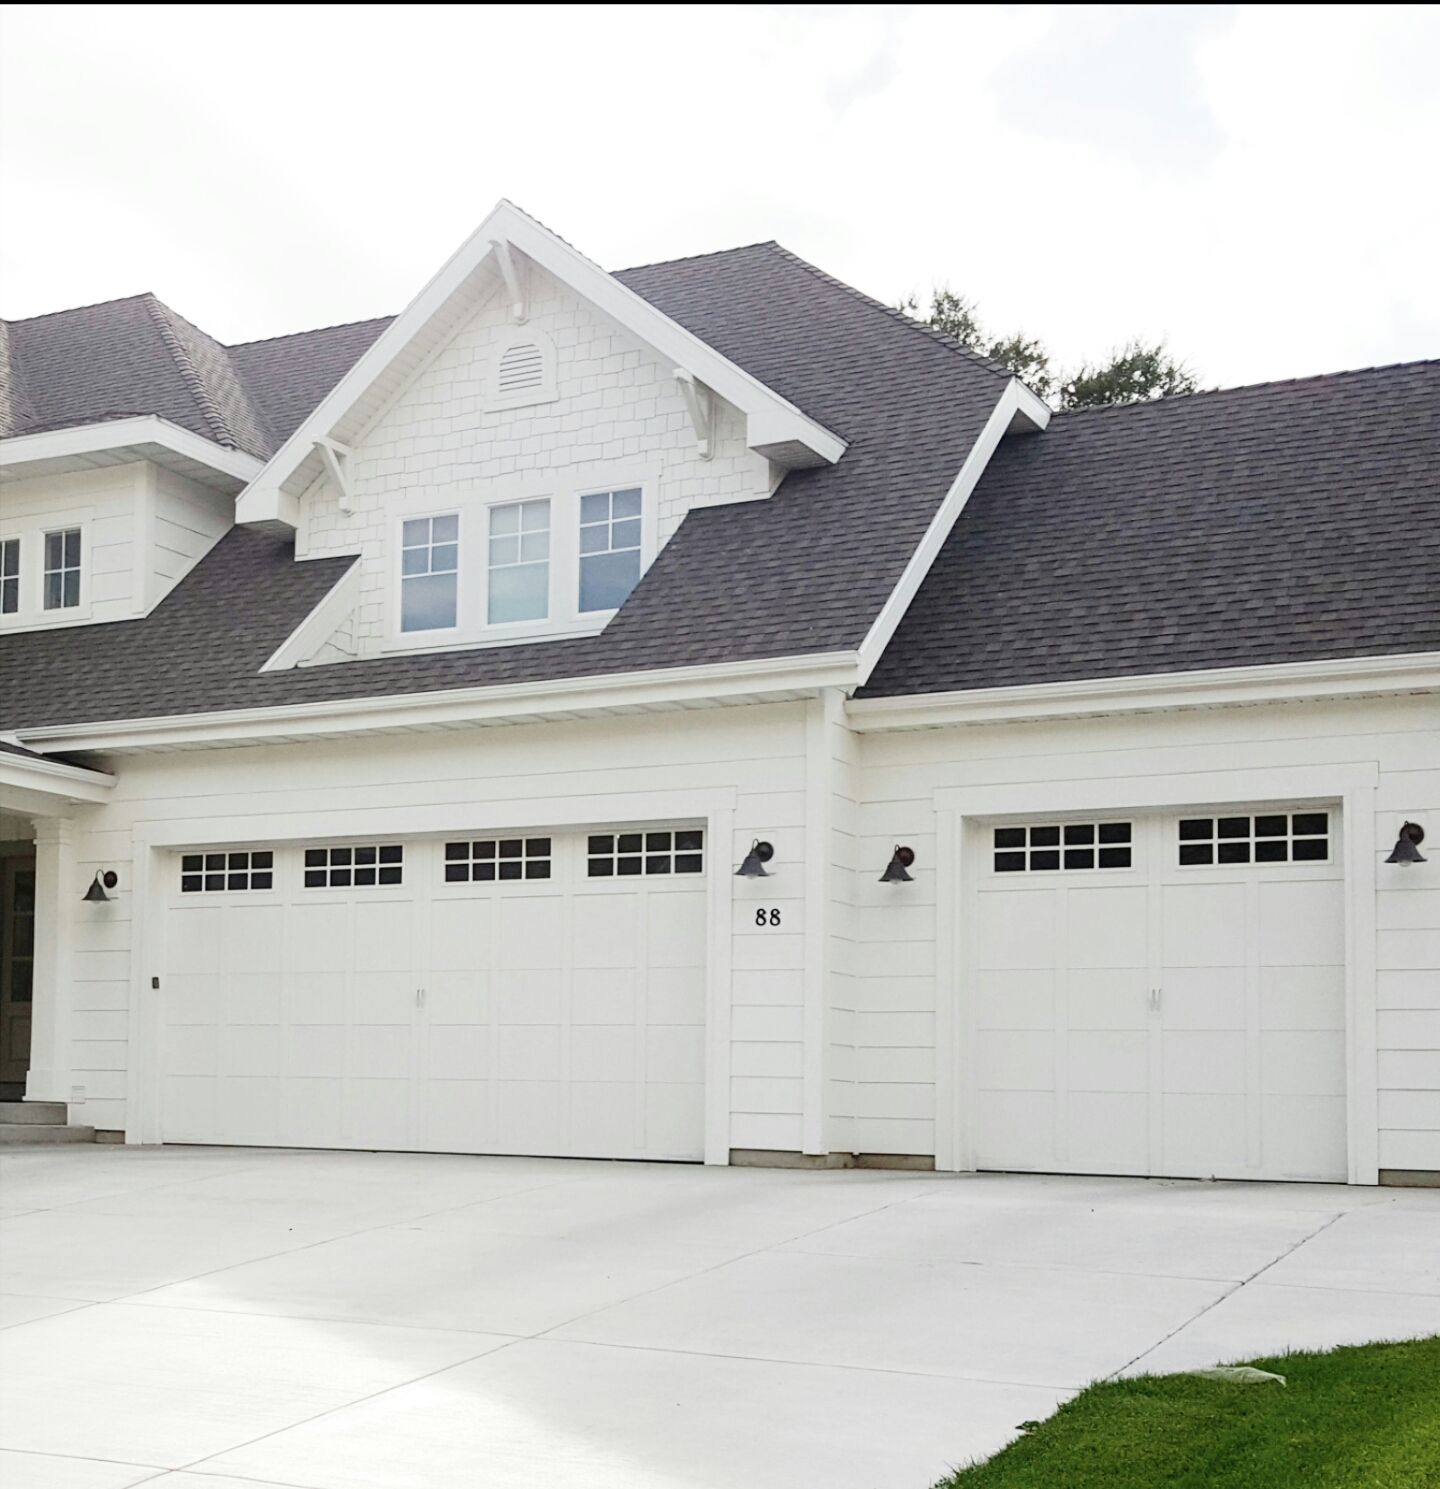 Garage door options all white house black roof white shaker garage door options all white house black roof white shaker shingles white rubansaba